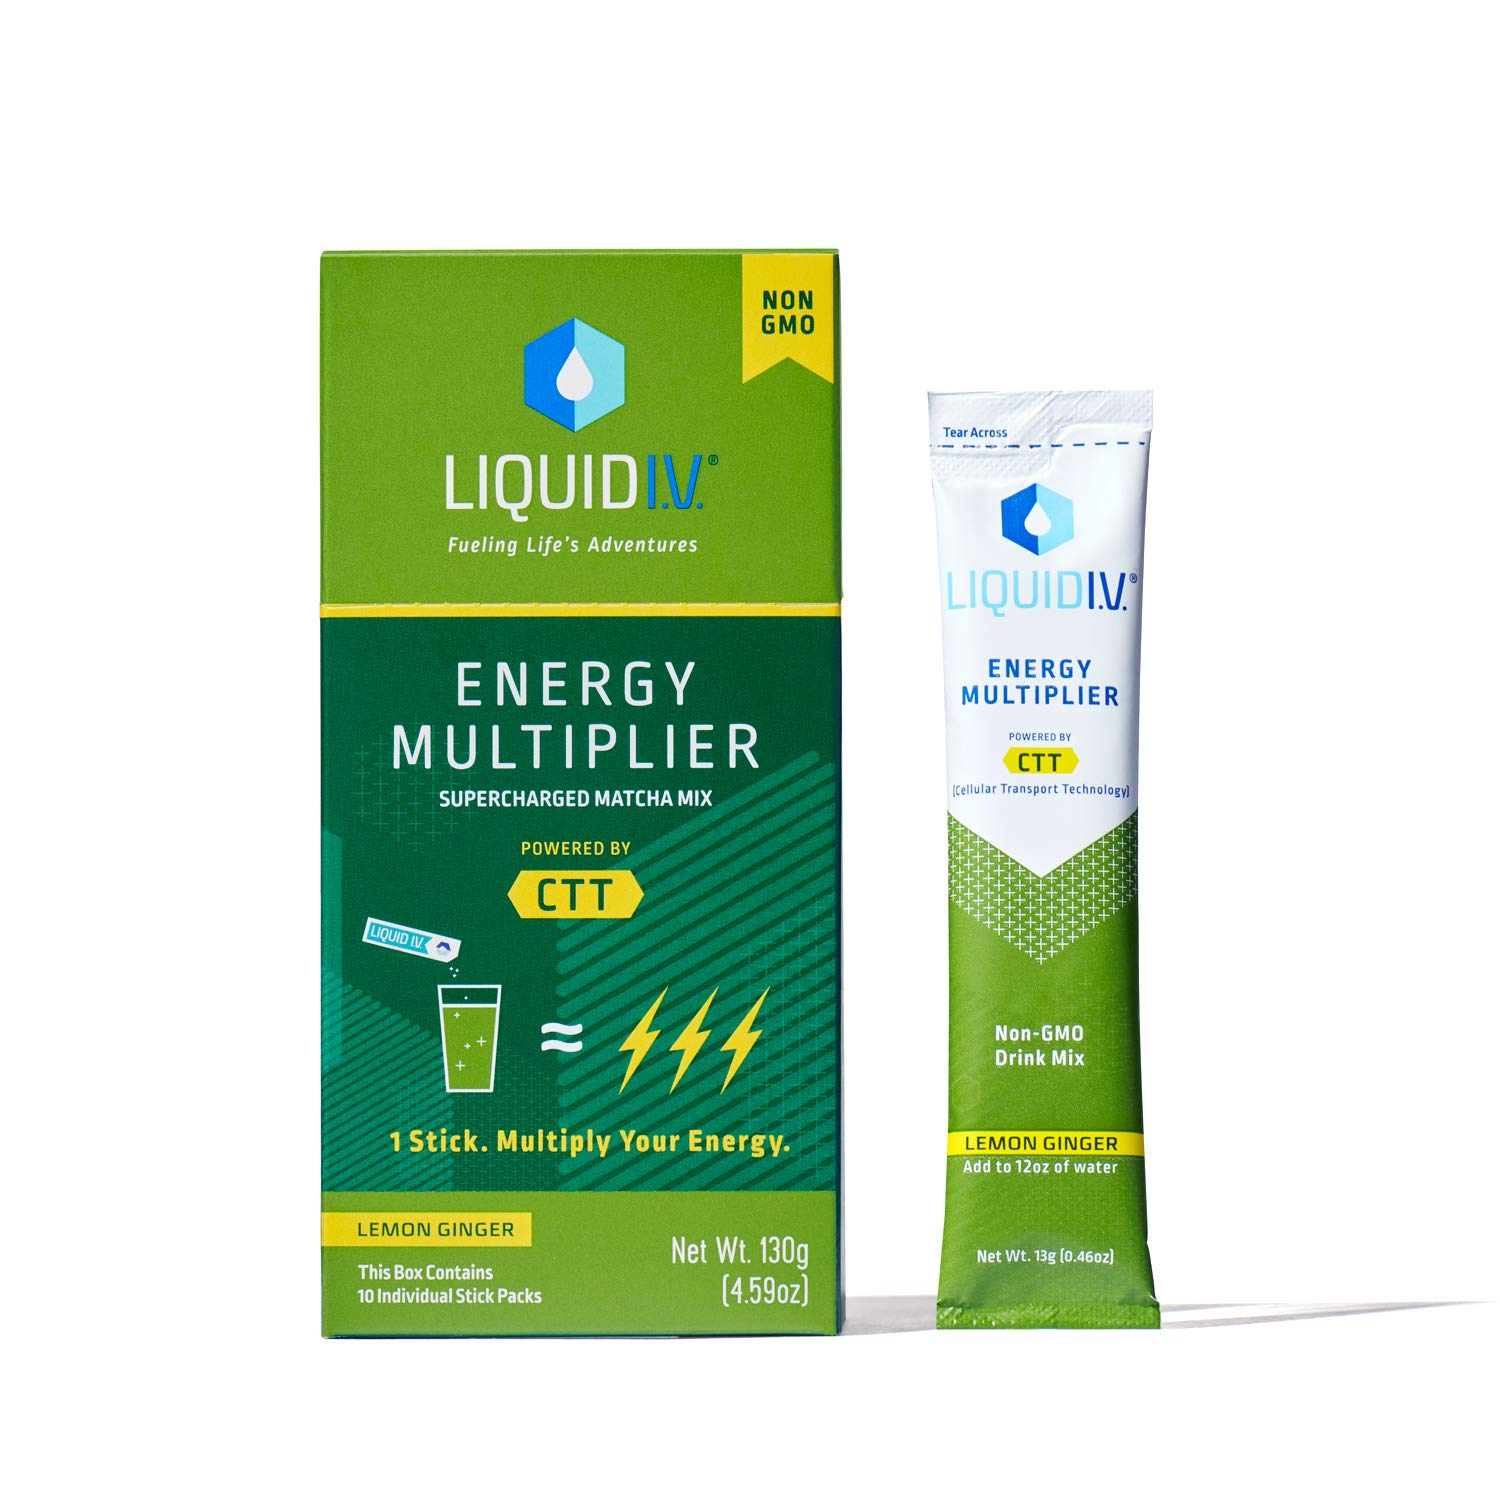 Liquid I.V. Energy Multiplier, Super-Charged Matcha Mix, 9 Essential Vitamins, Natural Caffeine, Easy Open Packets, Supplement Drink Mix, (Lemon Ginger) (120 Count)